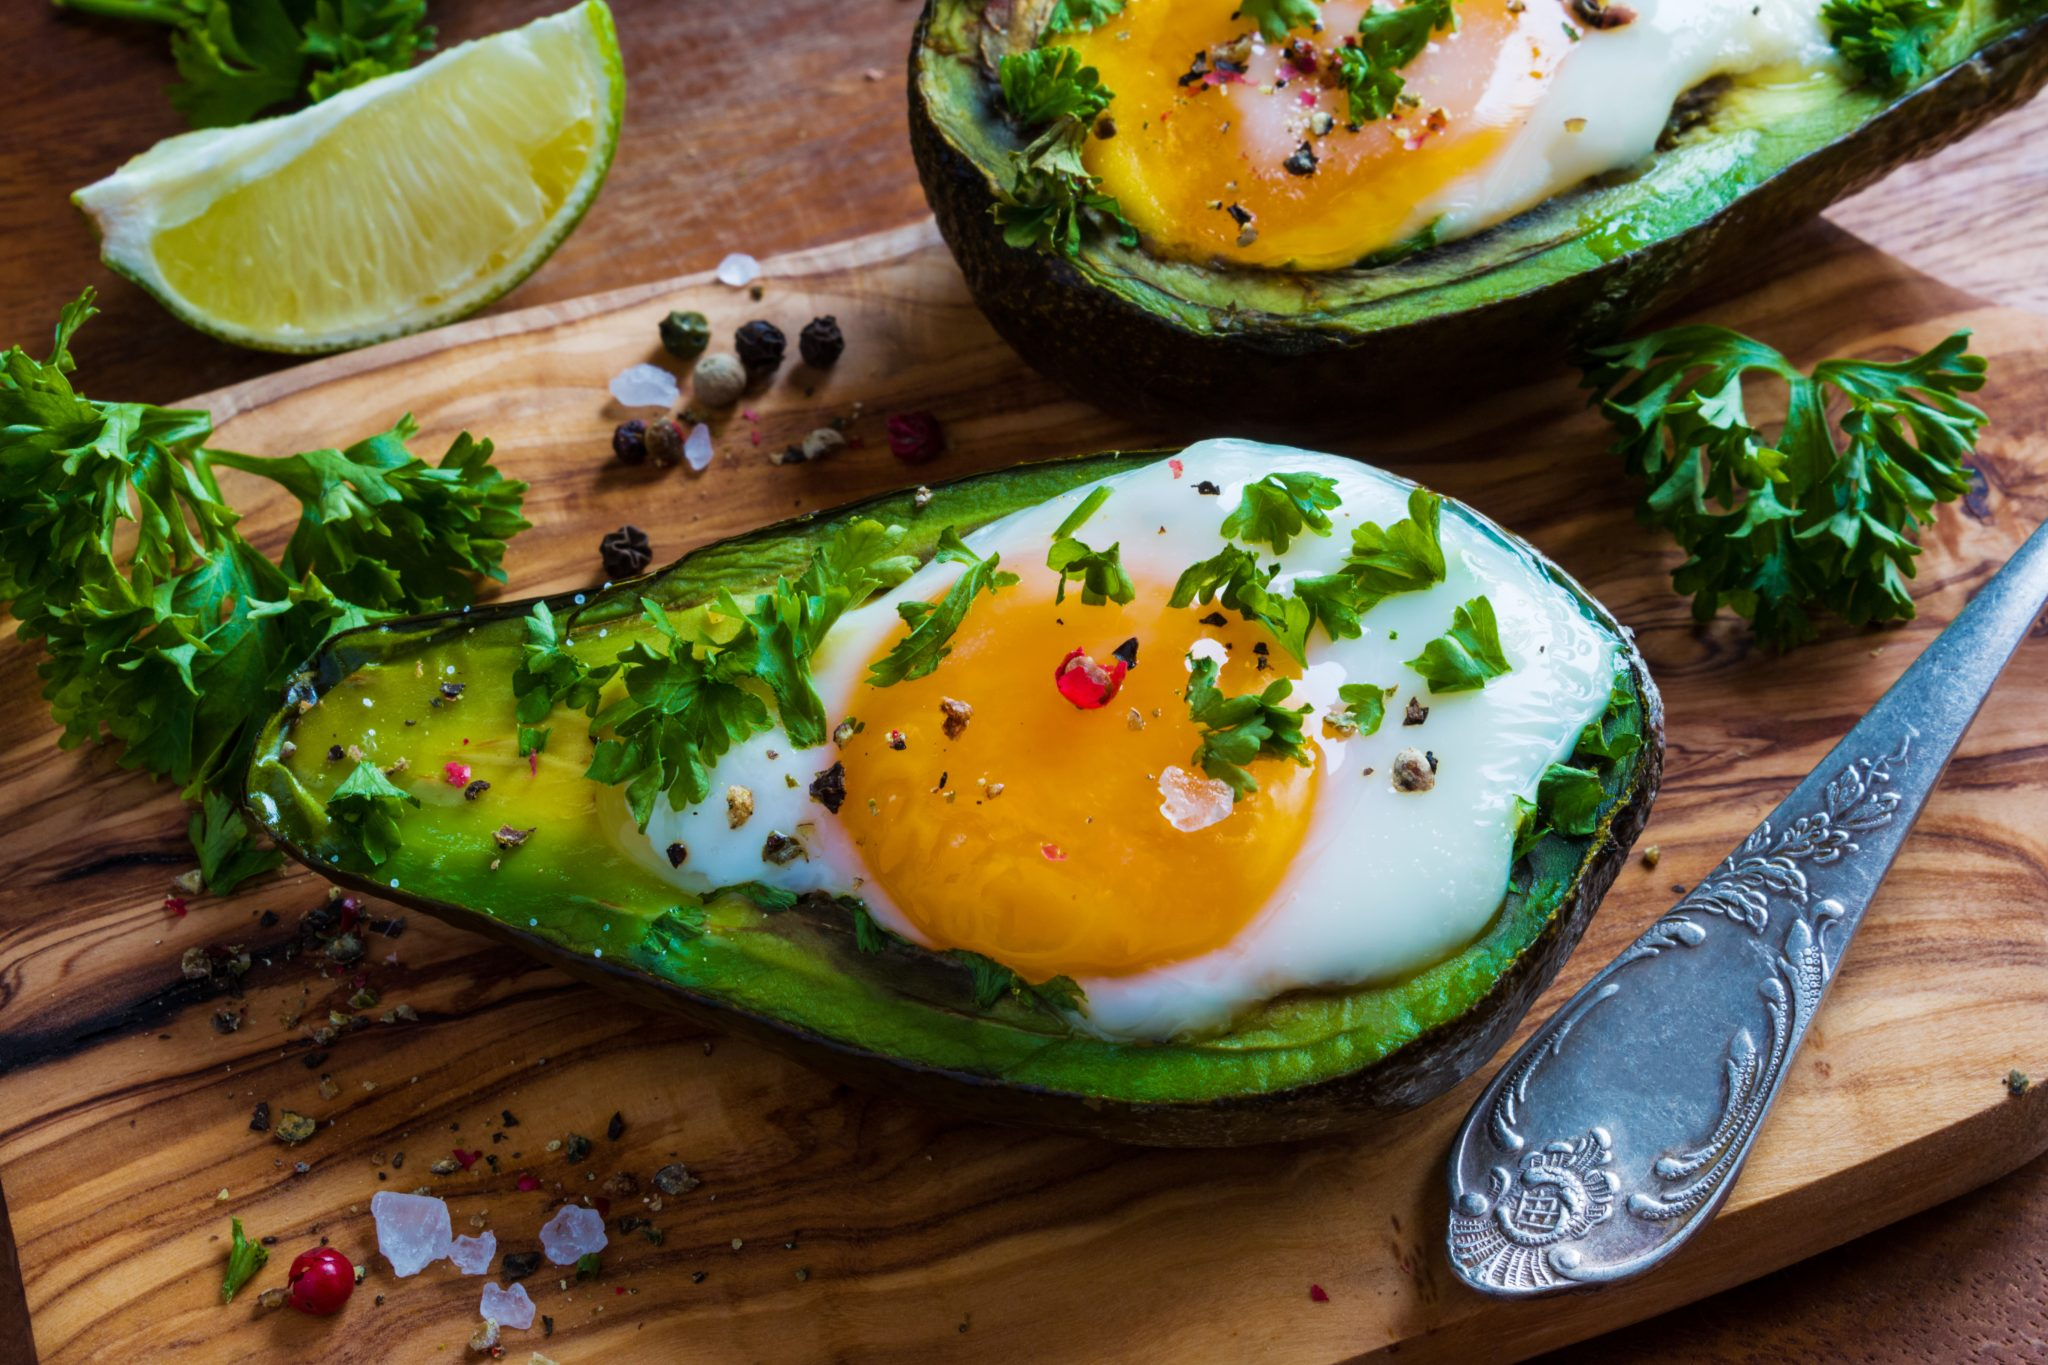 Avocado topped with egg and spring onions